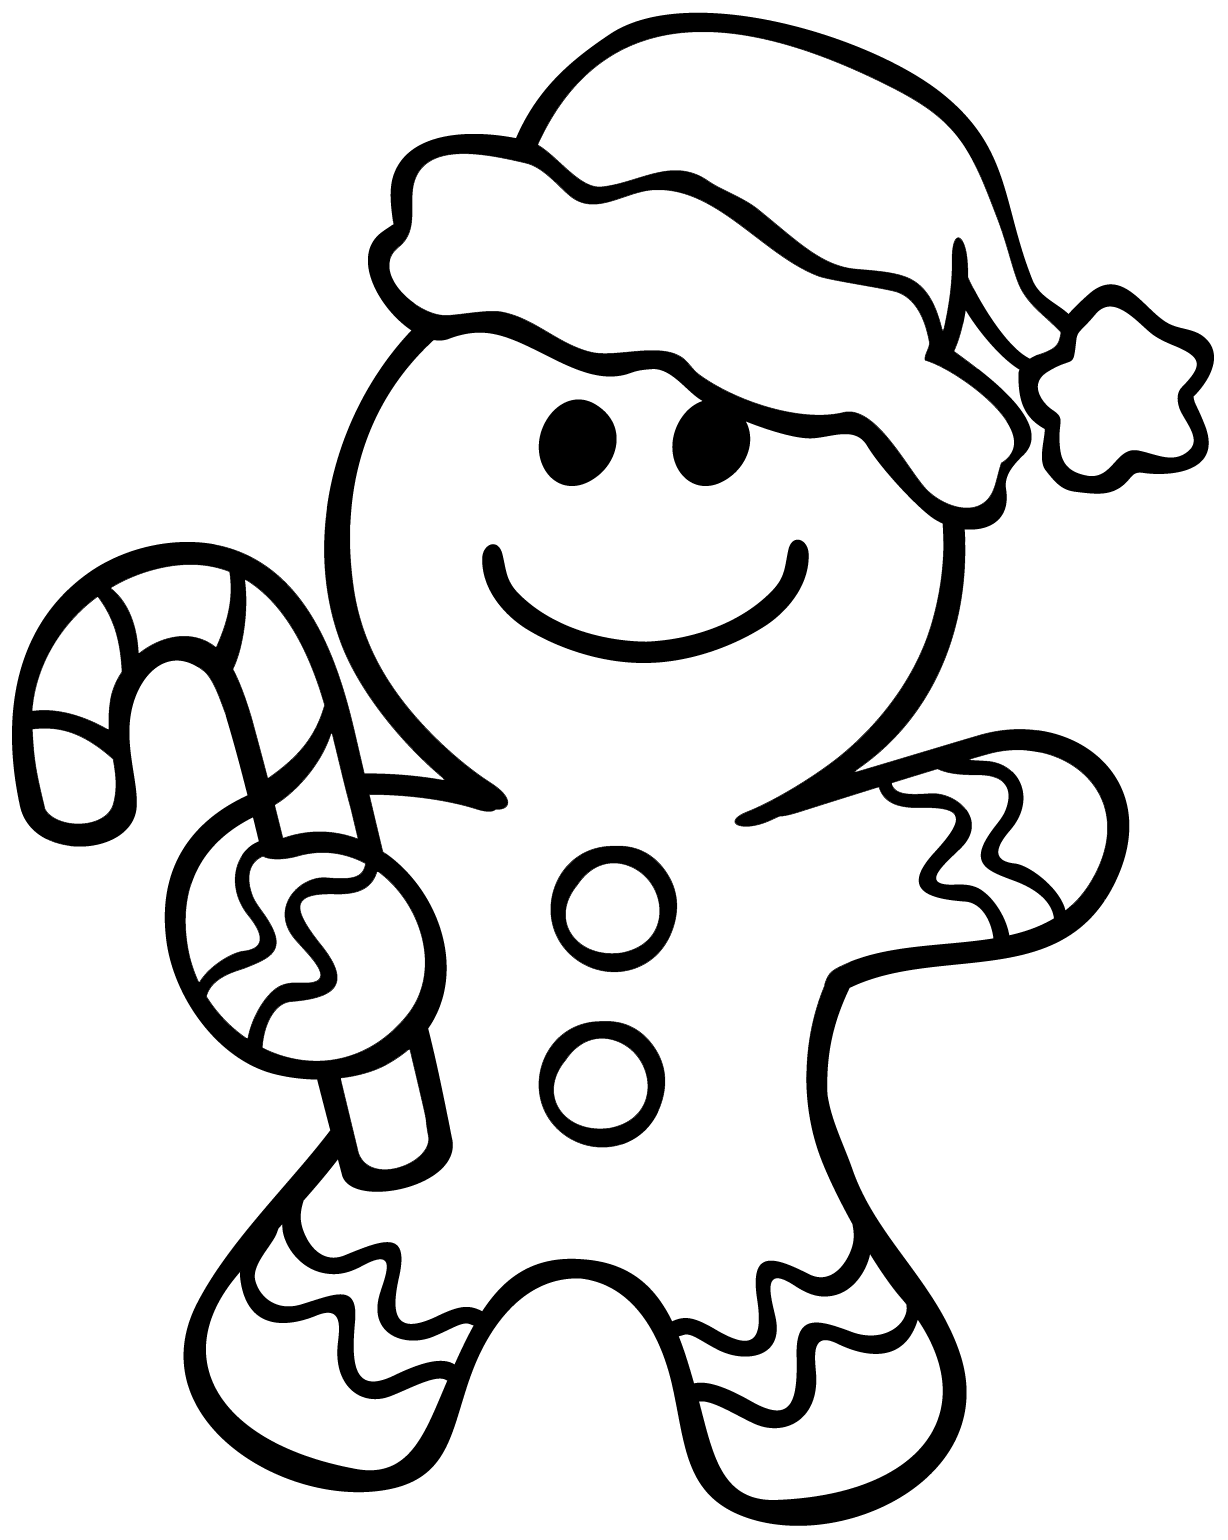 gingerbread color sheet christmas gingerbread man coloring page free printable gingerbread sheet color